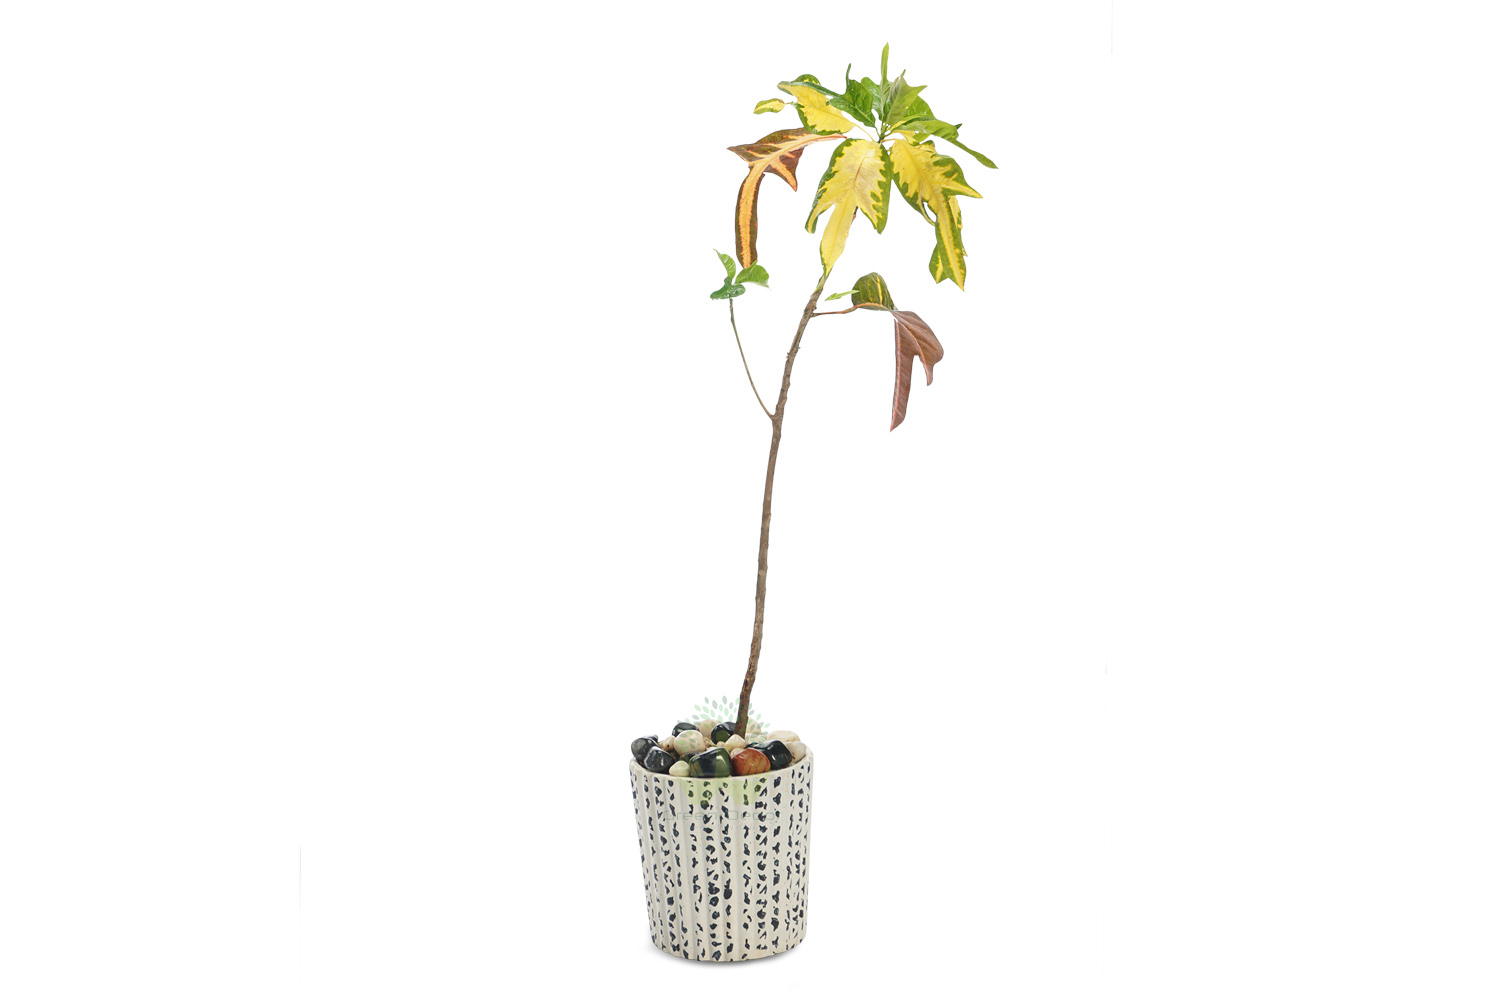 Buy Croton Variegatum Duckfoot Plants Front View , White Pots and seeds in Delhi NCR by the best online nursery shop Greendecor.